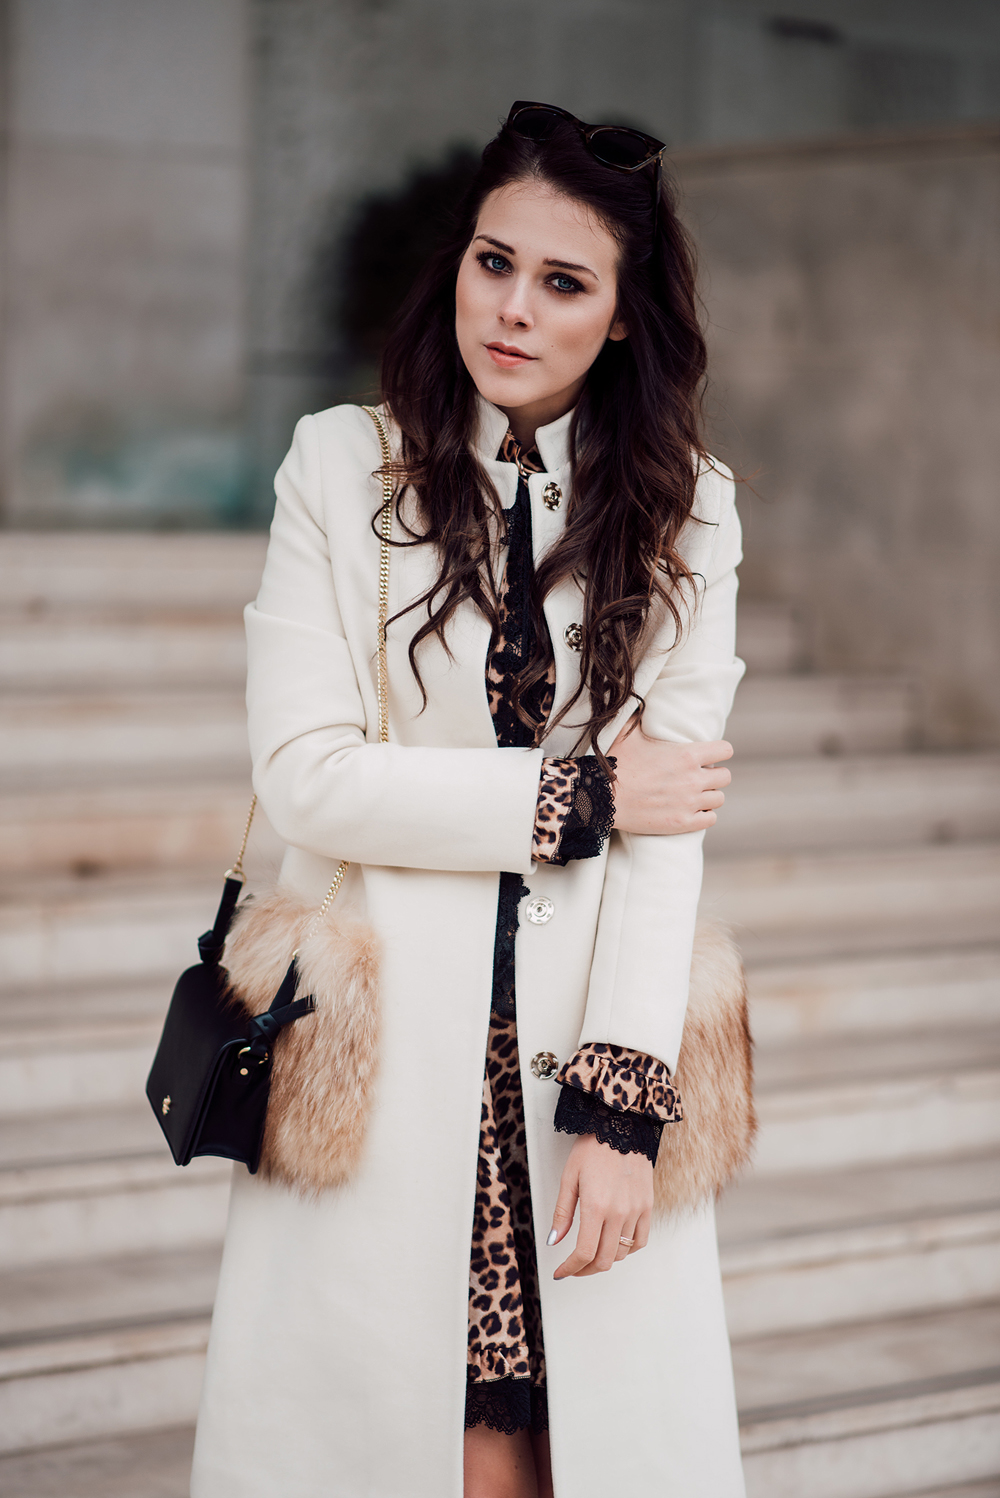 eva-ahacevcic_love-eva_terminal3_ootd_leopard-print_dress_fashion-blogger